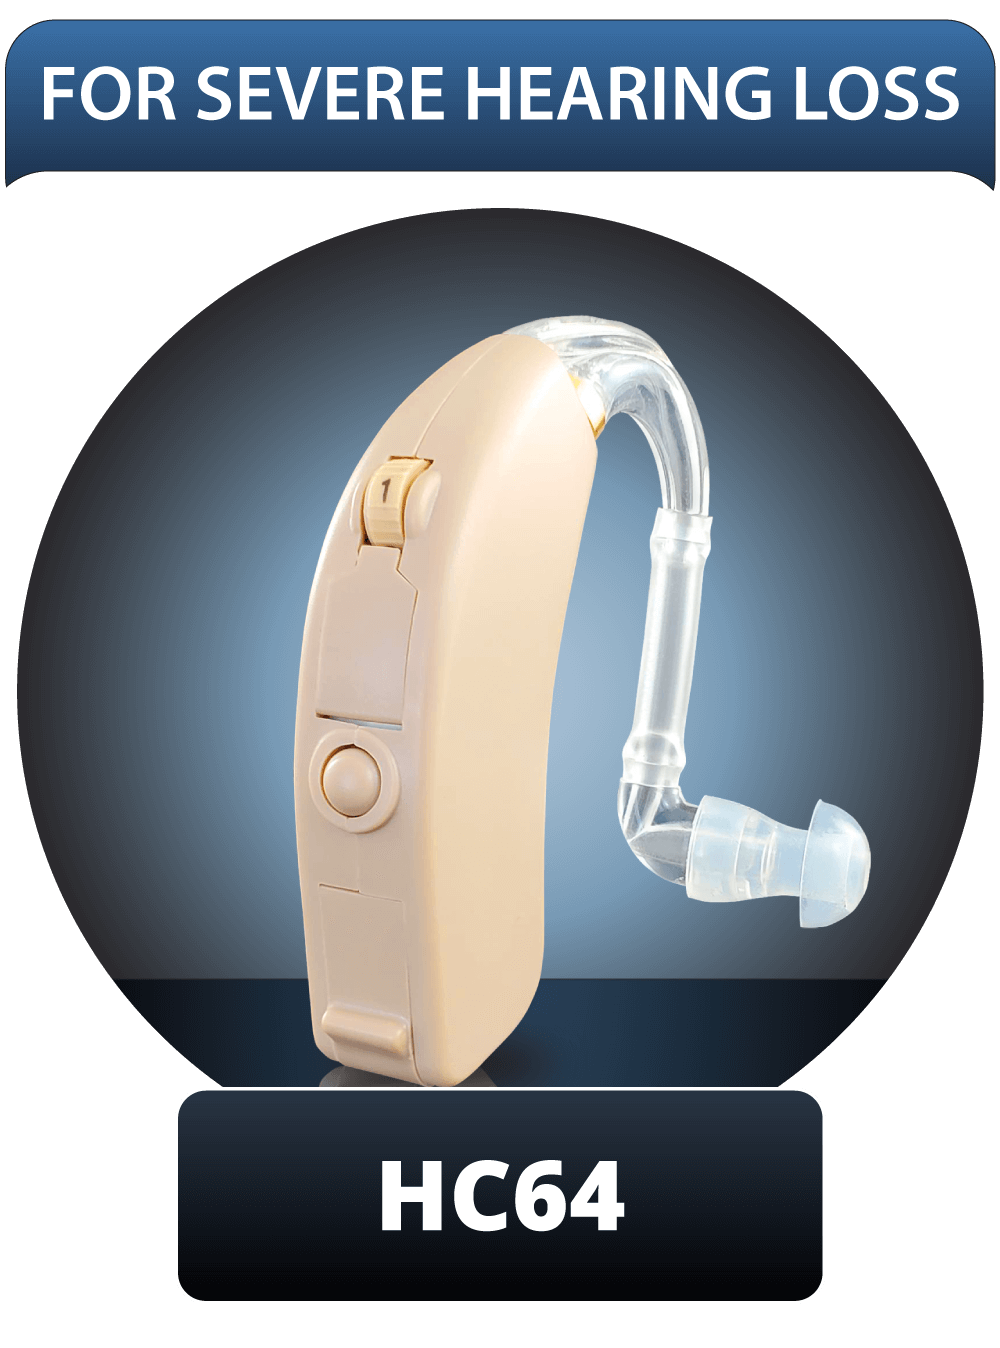 HC64 For Severe Hearing Loss